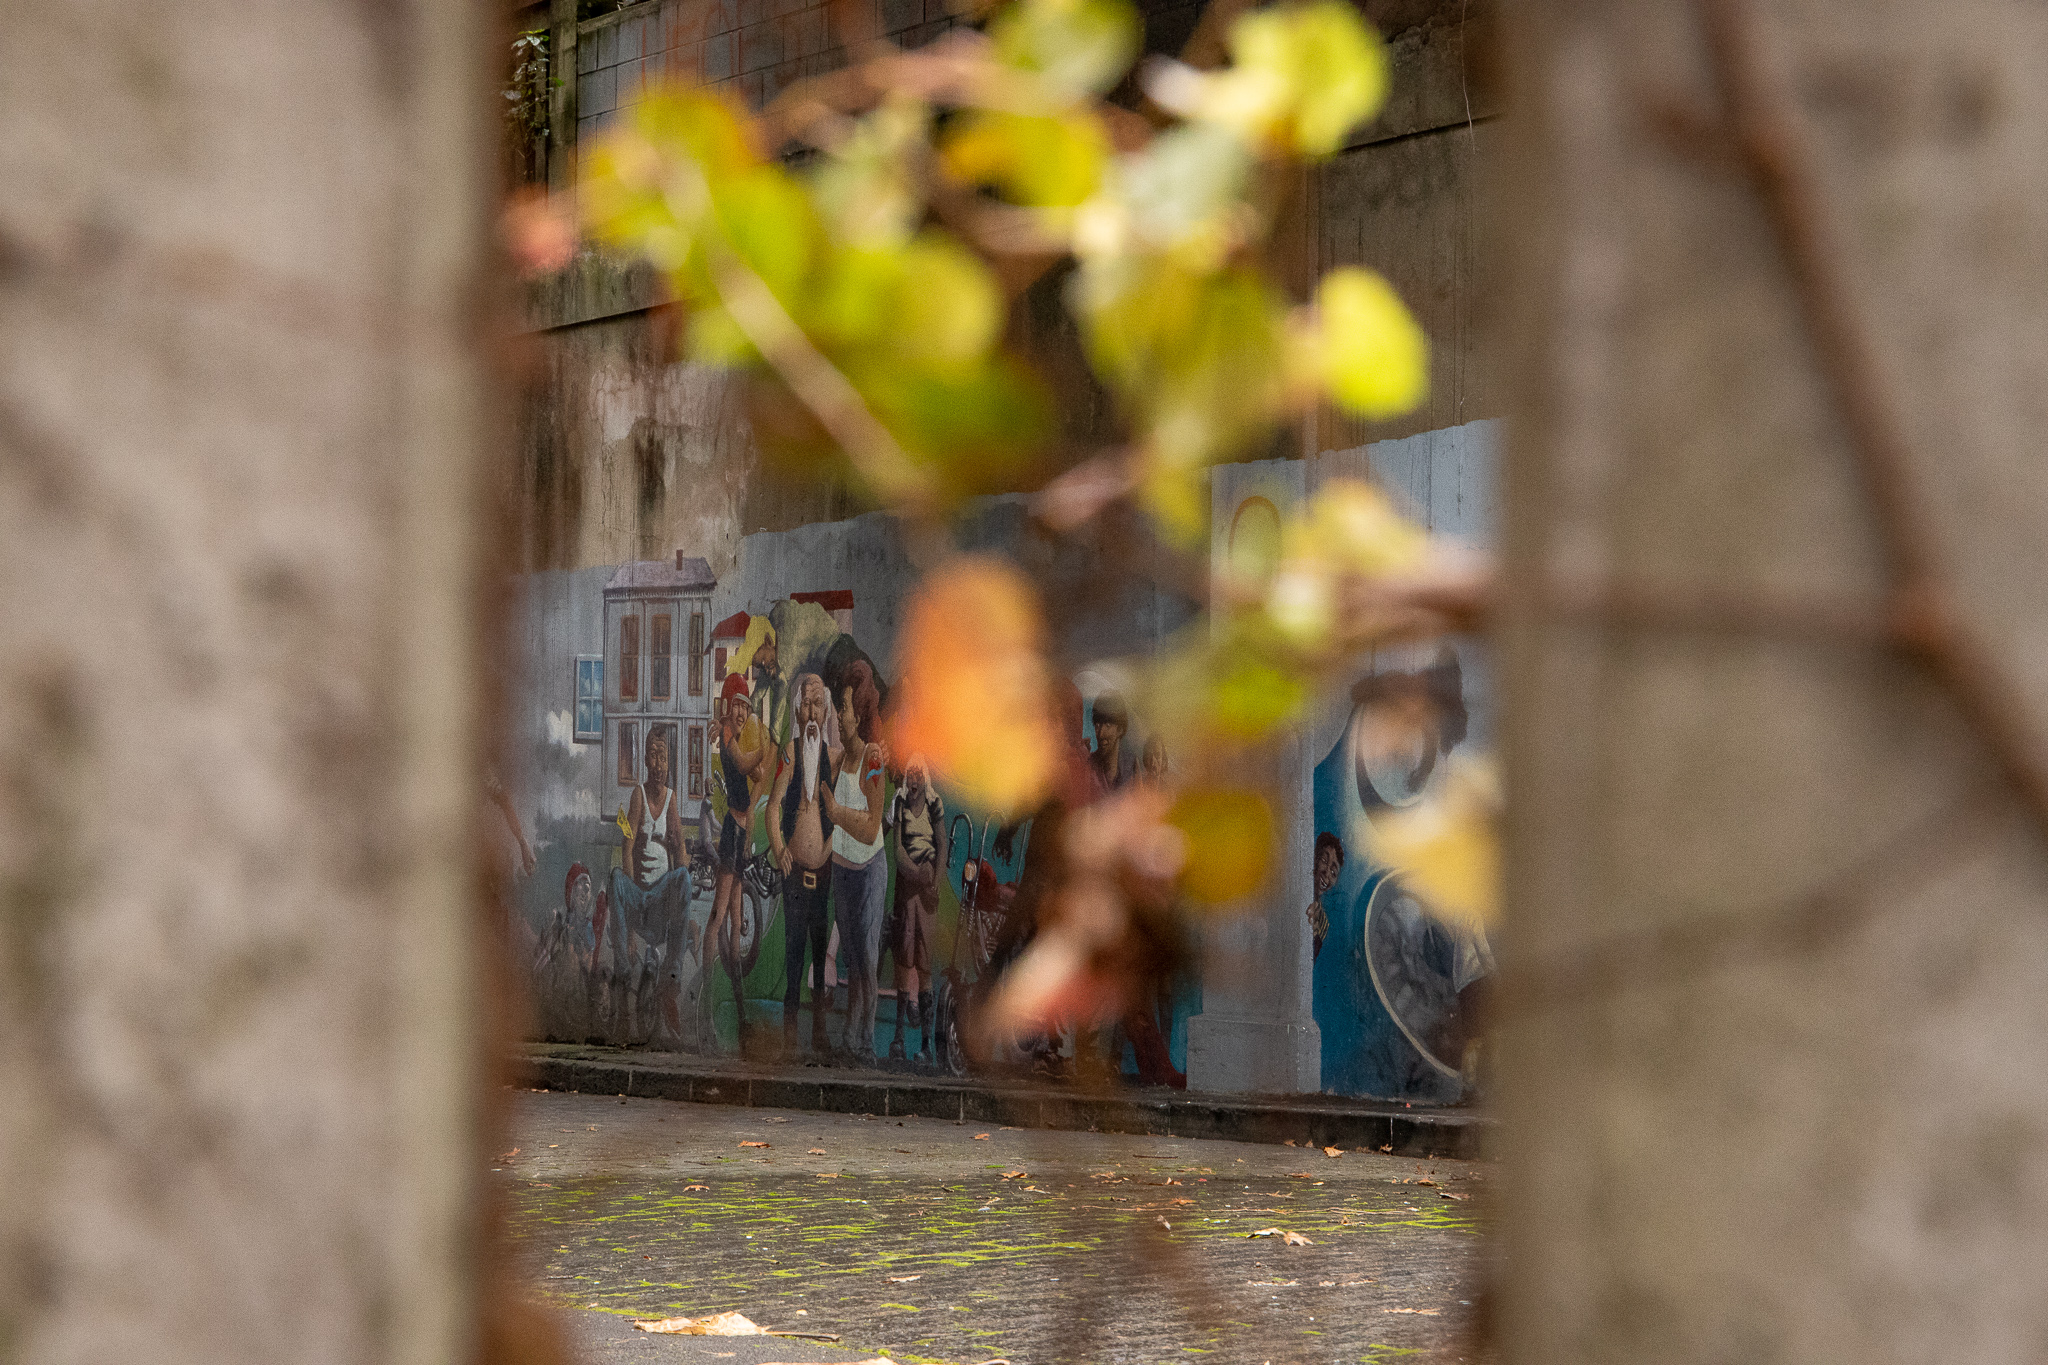 Street Art Revealed by Anthony Sowerby  Canon EOS 6D Mark II 24-105mm f/3.5-5.6 83mm | ISO 8000 | f/11 | 1/60 sec